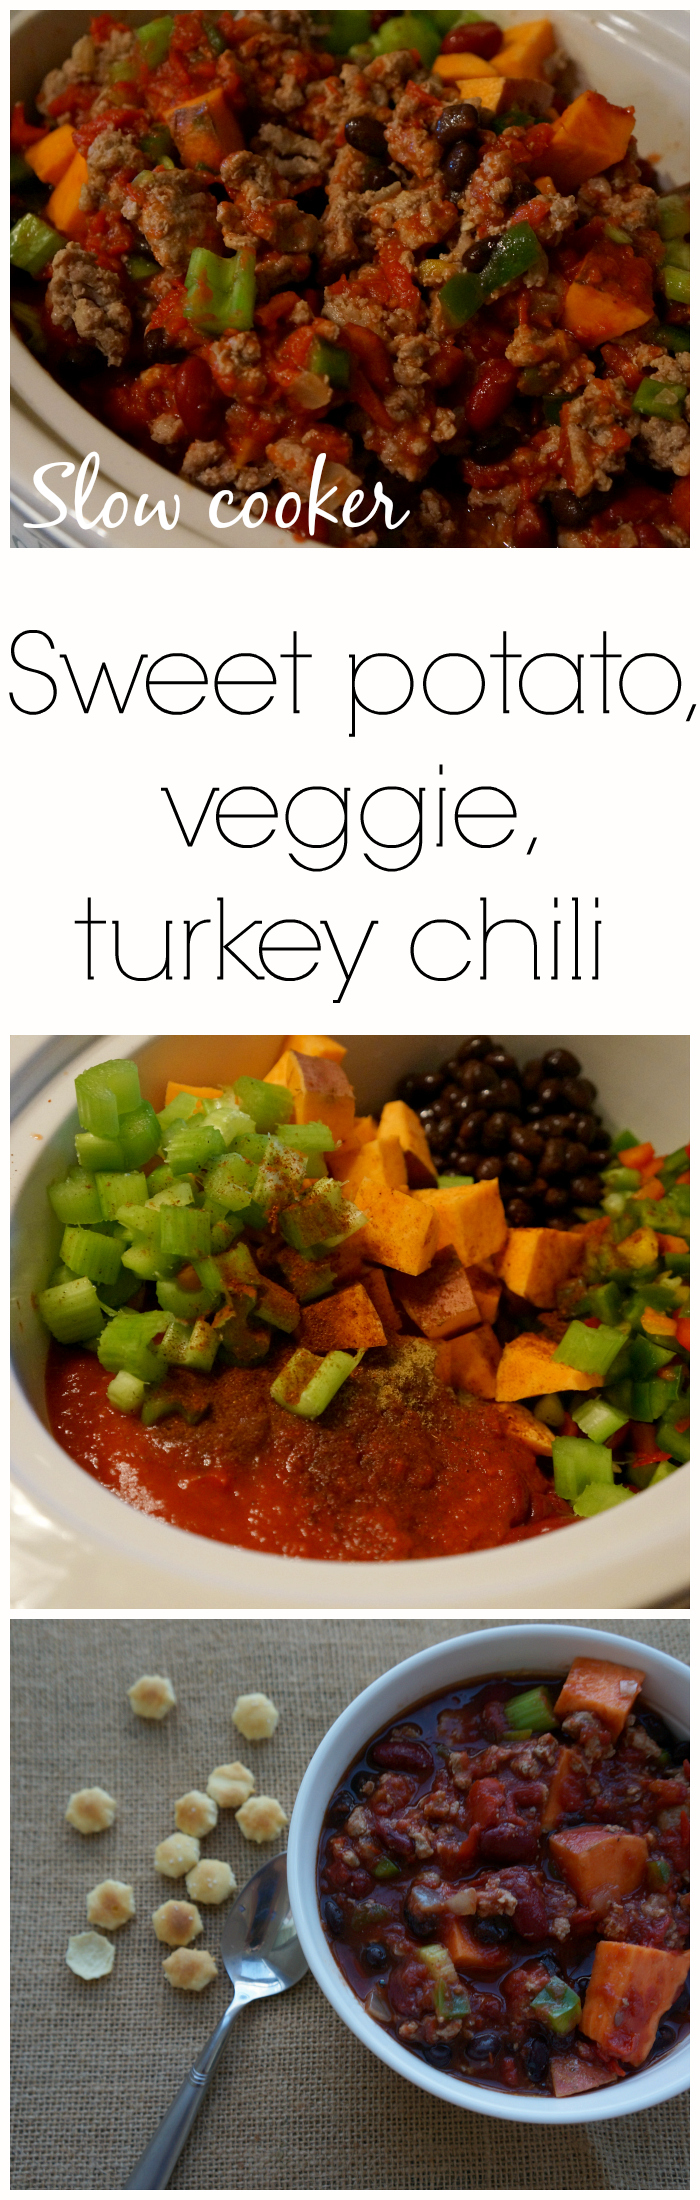 Healthy Sweet Potato Turkey and Vegetable Slow Cooker Chili